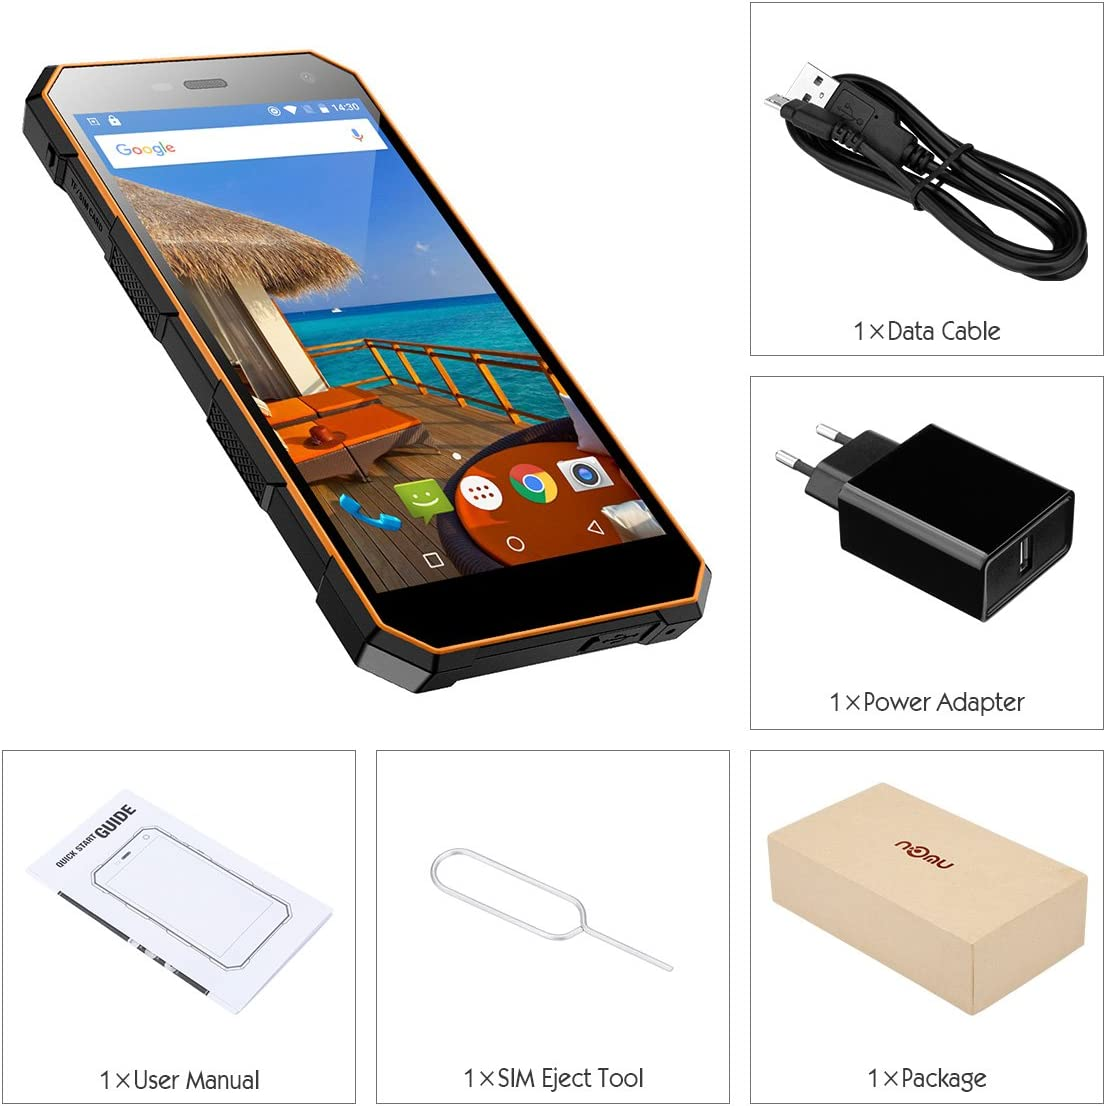 NOMU S10-4G Smartphone Libre (Android 6.0, 5